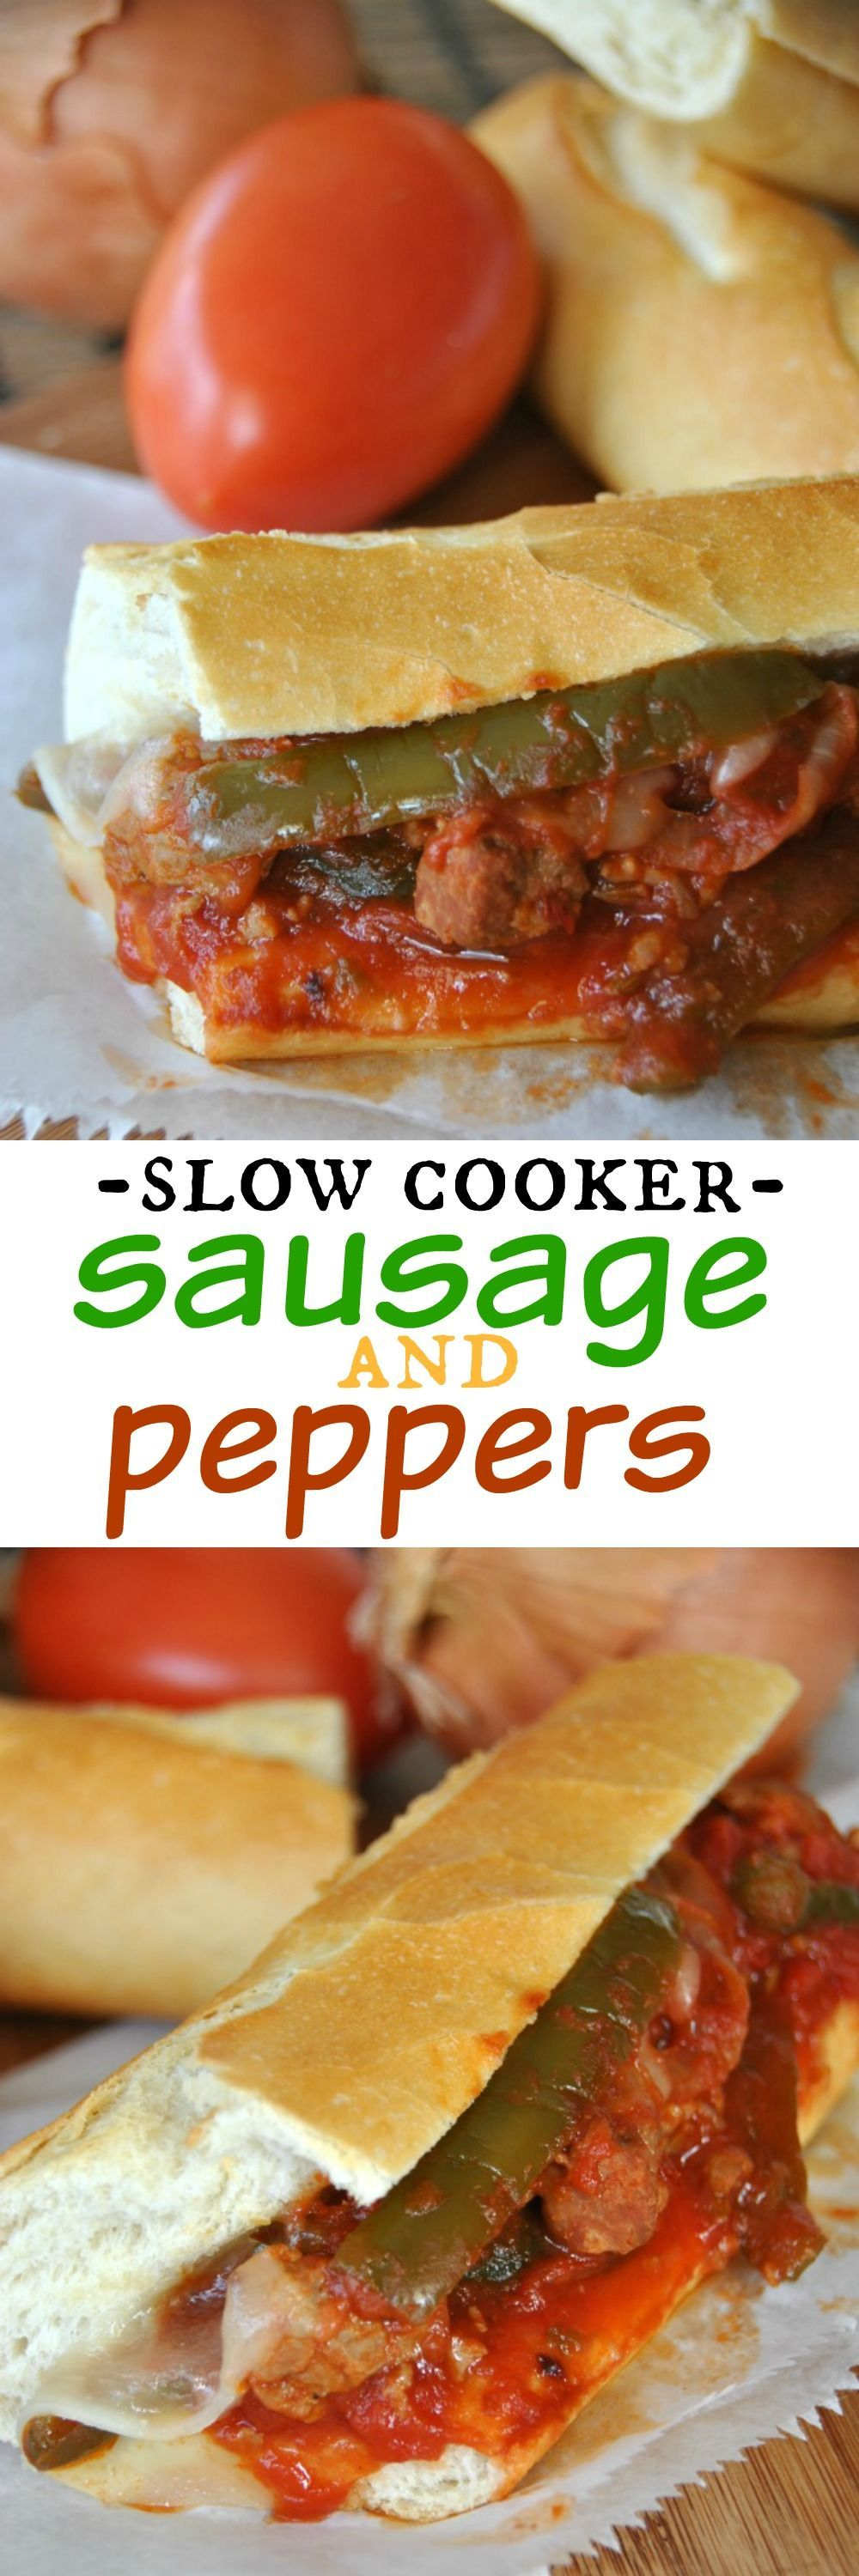 Cooker Sausage and Peppers: delicious, hearty meal made in your